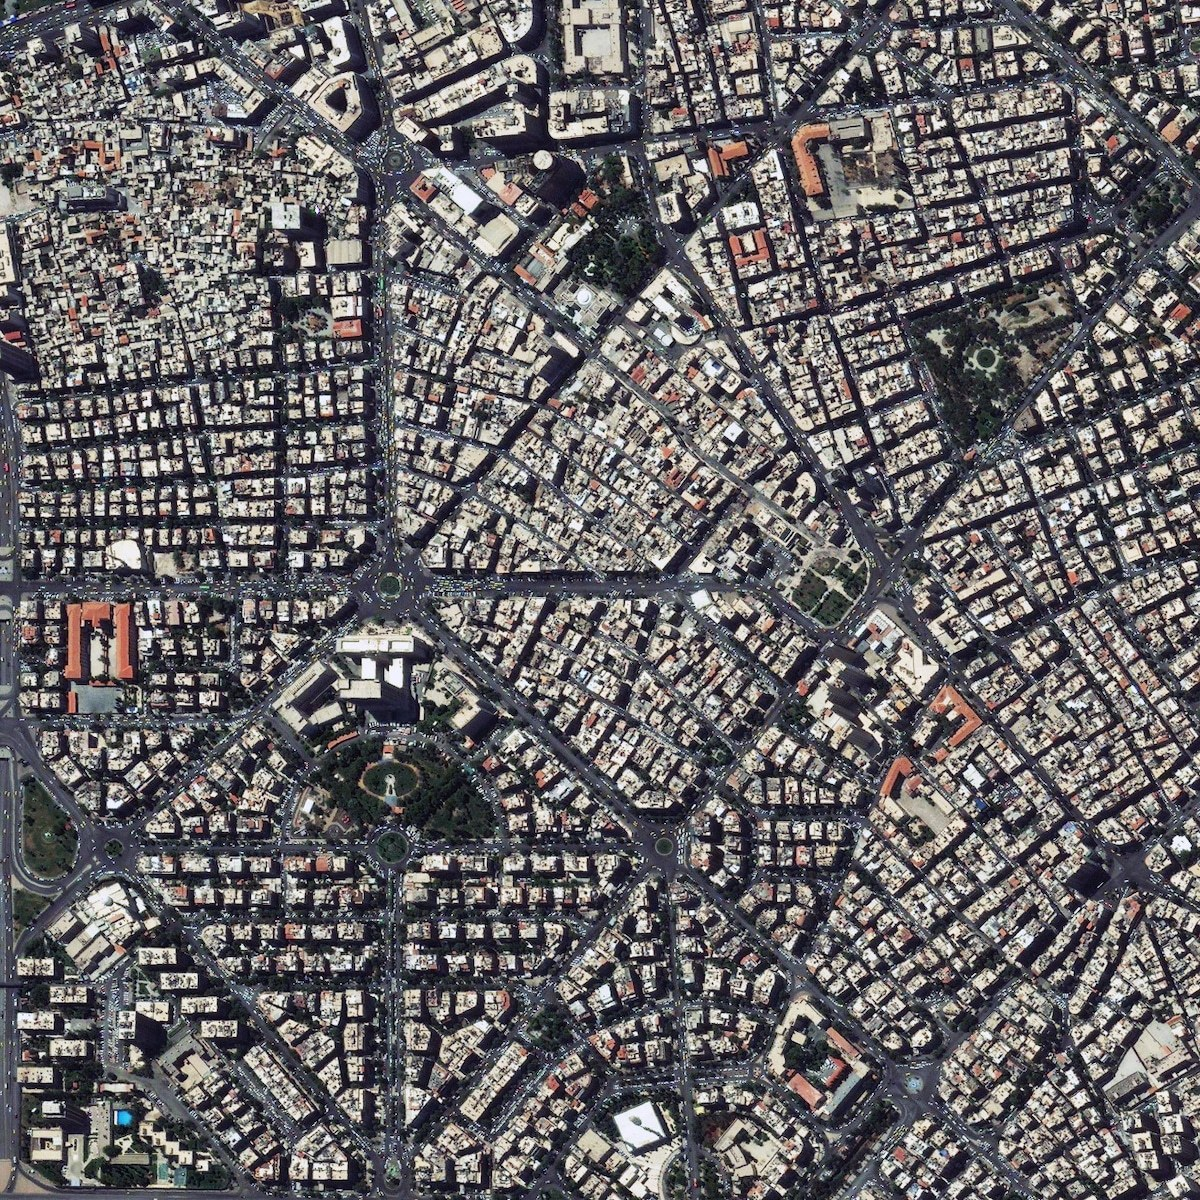 Get-a-Birds-Eye-View-of-UNESCO-World-Heritage-Sites-Across-the-Globe-20